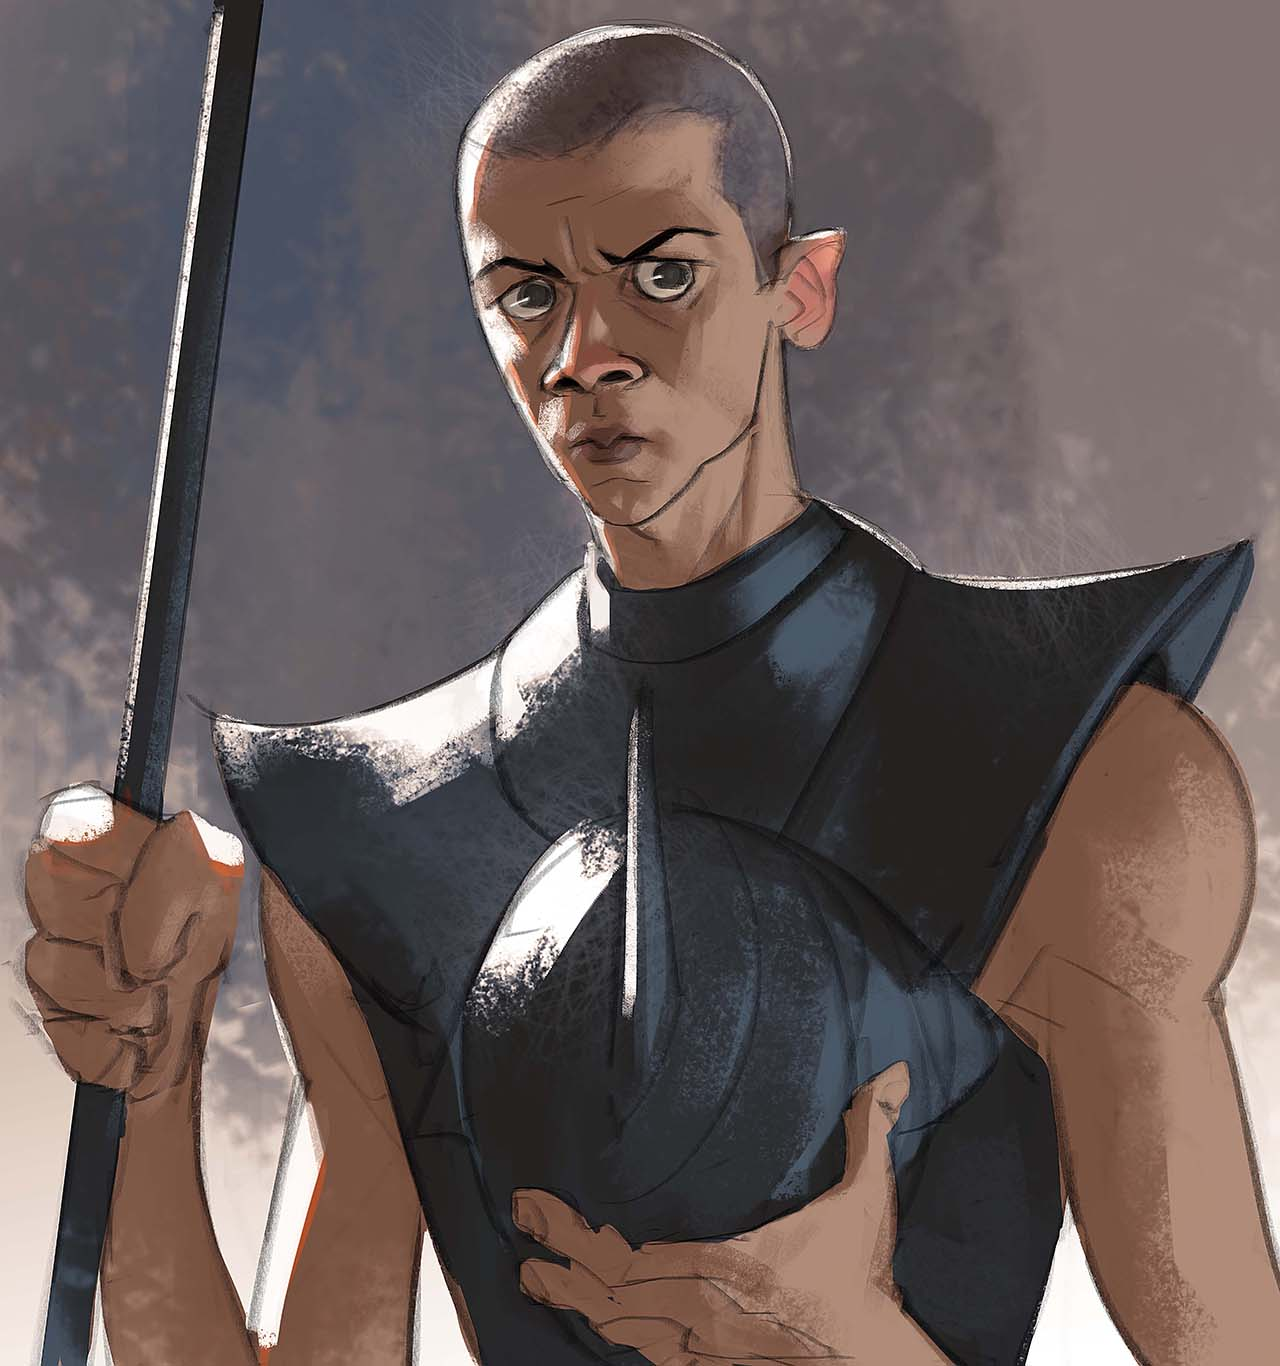 Artist Creates Unique Character Arts From Game Of Thrones – Gray Worm Character Art By Ramón Nuñez